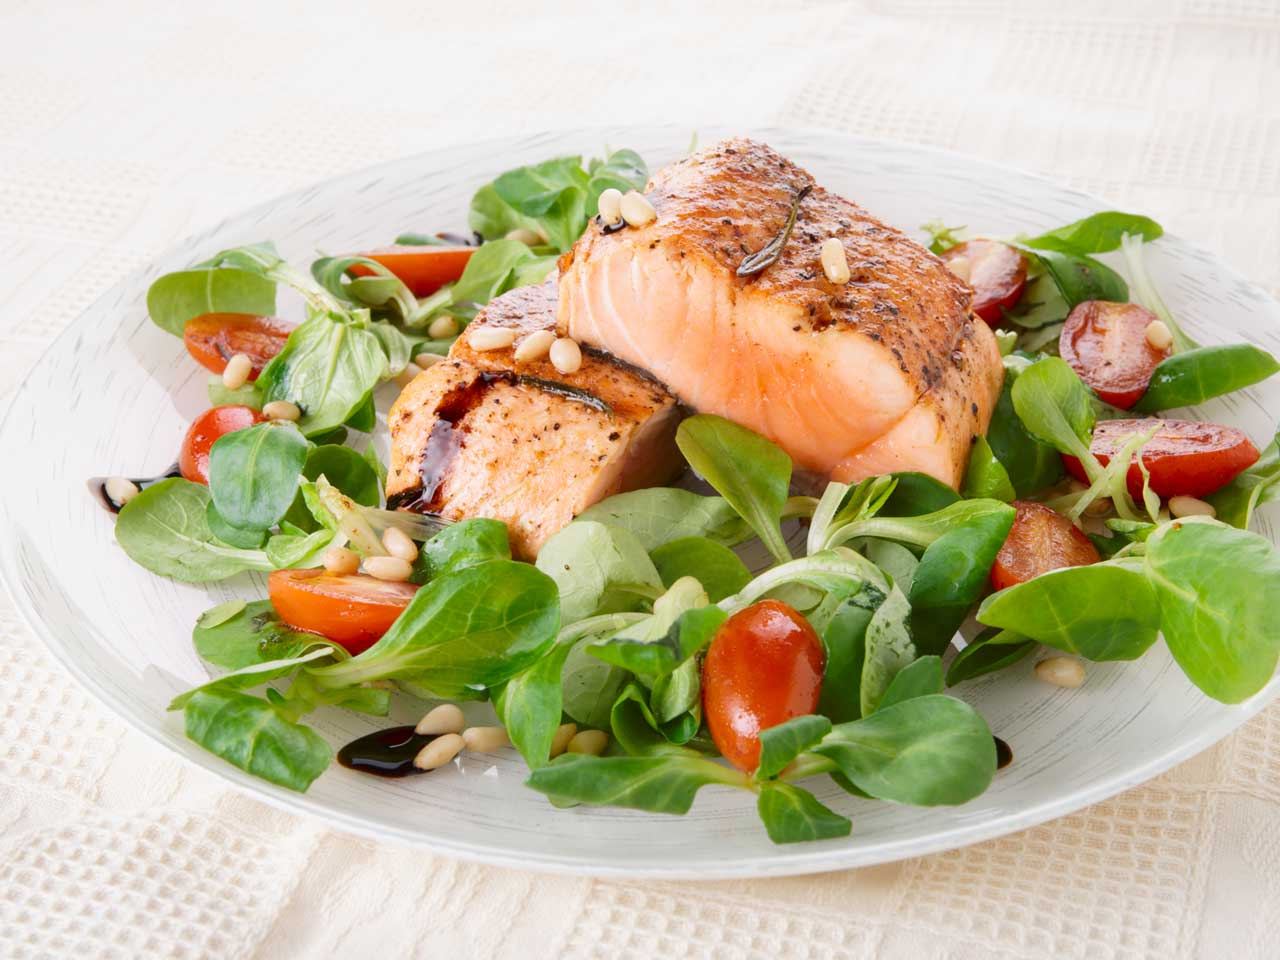 Cooked salmon